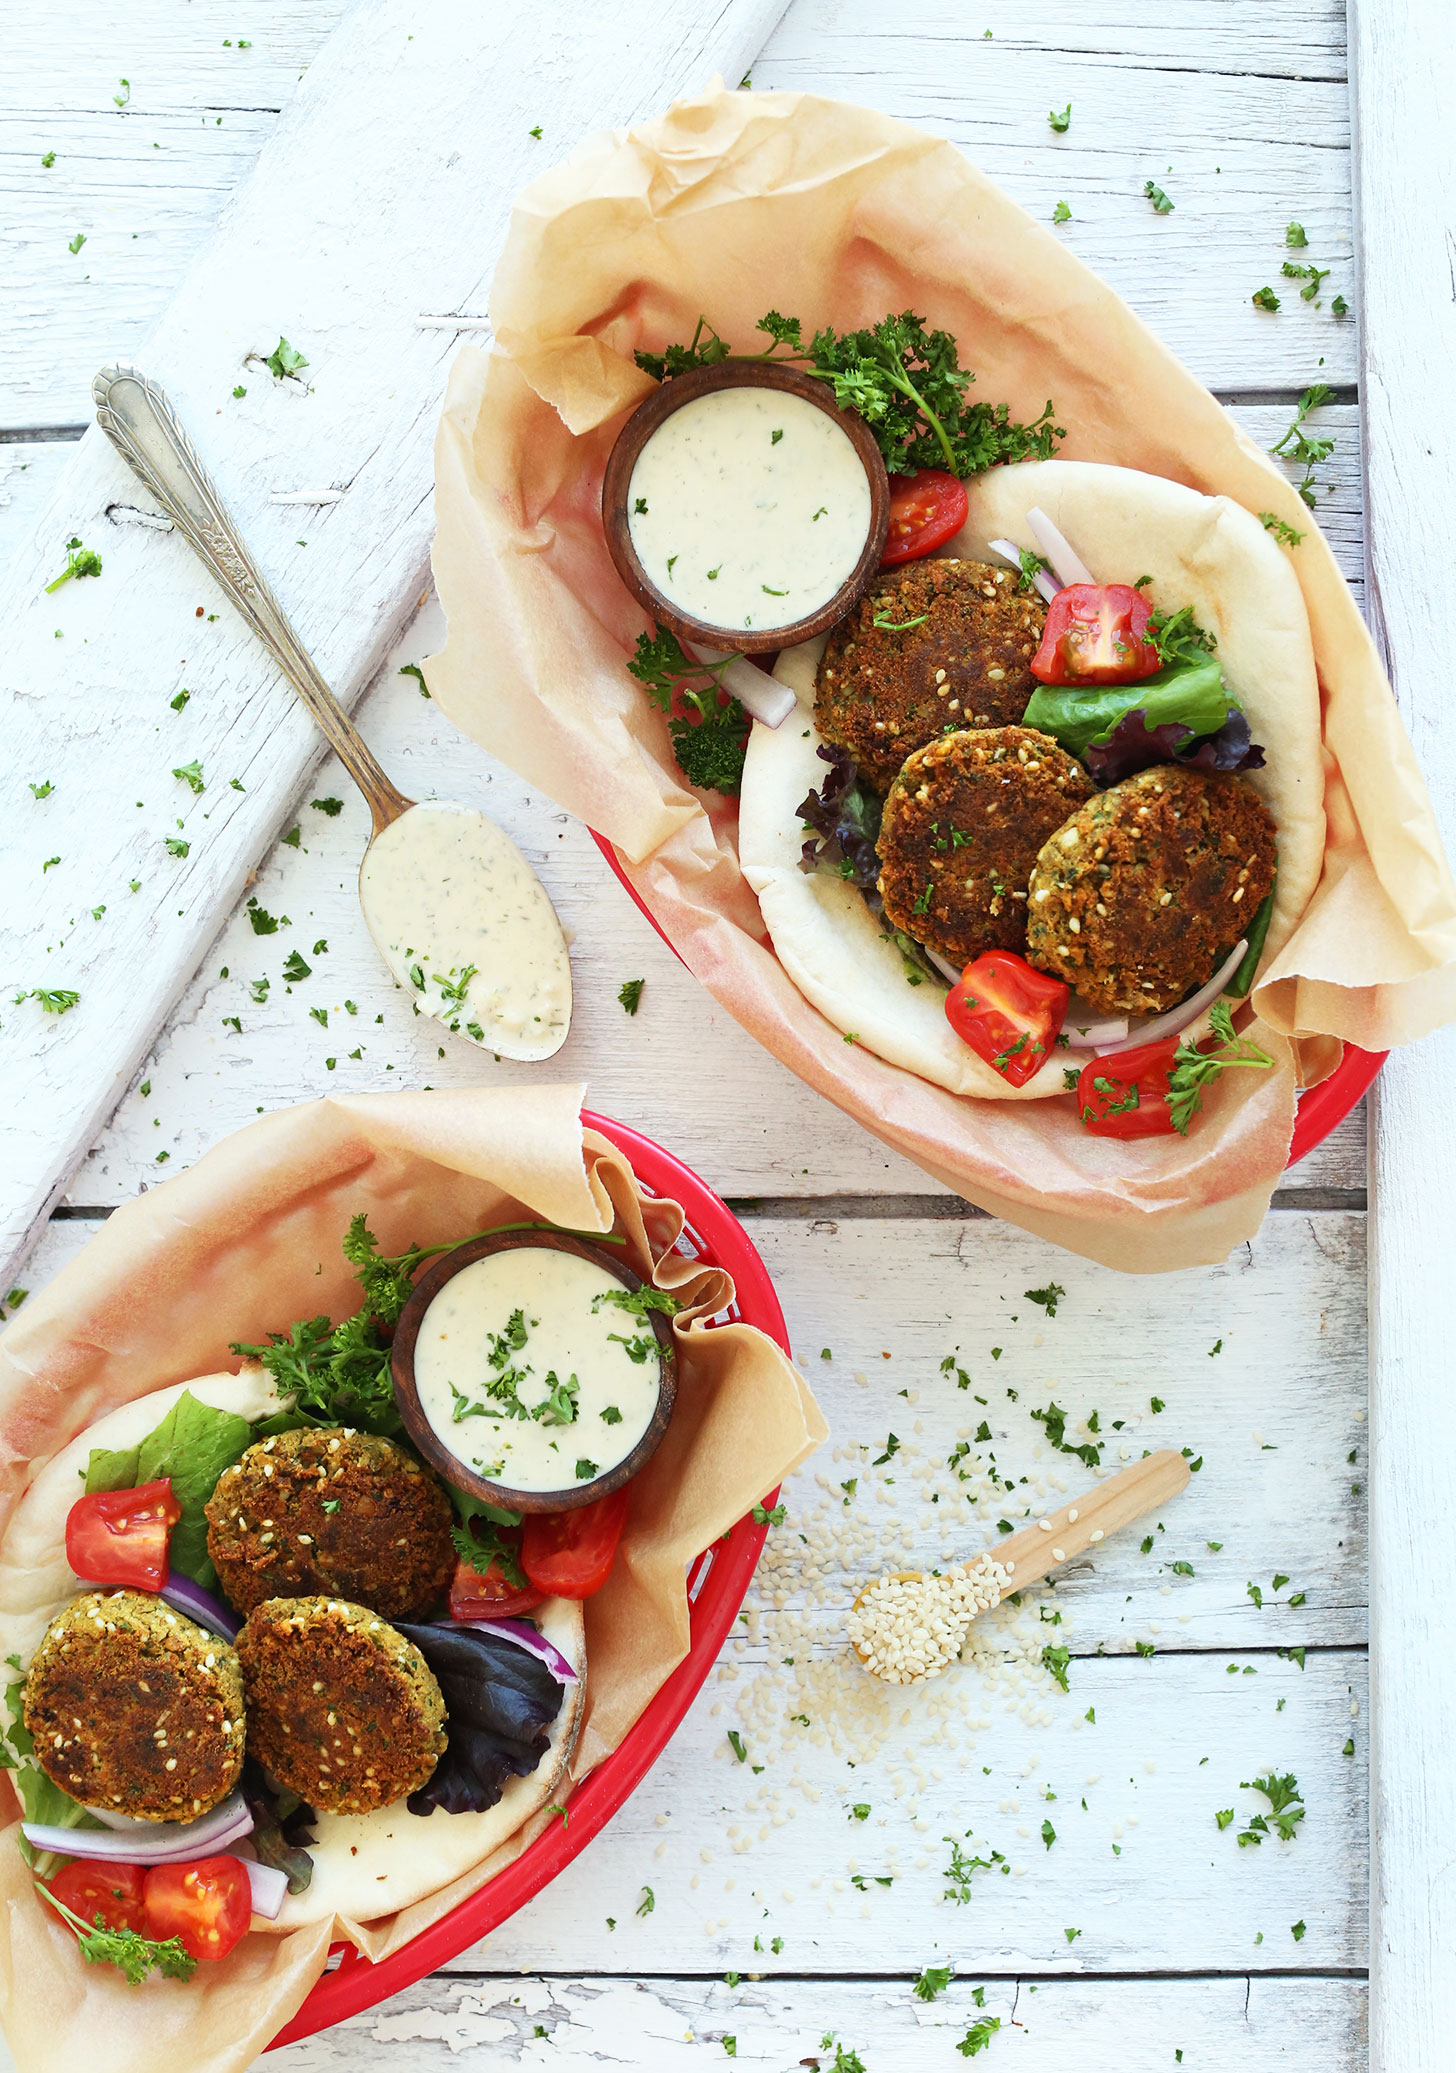 Easy vegan falafel minimalist baker recipes amazing simple vegan falafel with 10 ingredients and no frying required vegan healthy forumfinder Gallery